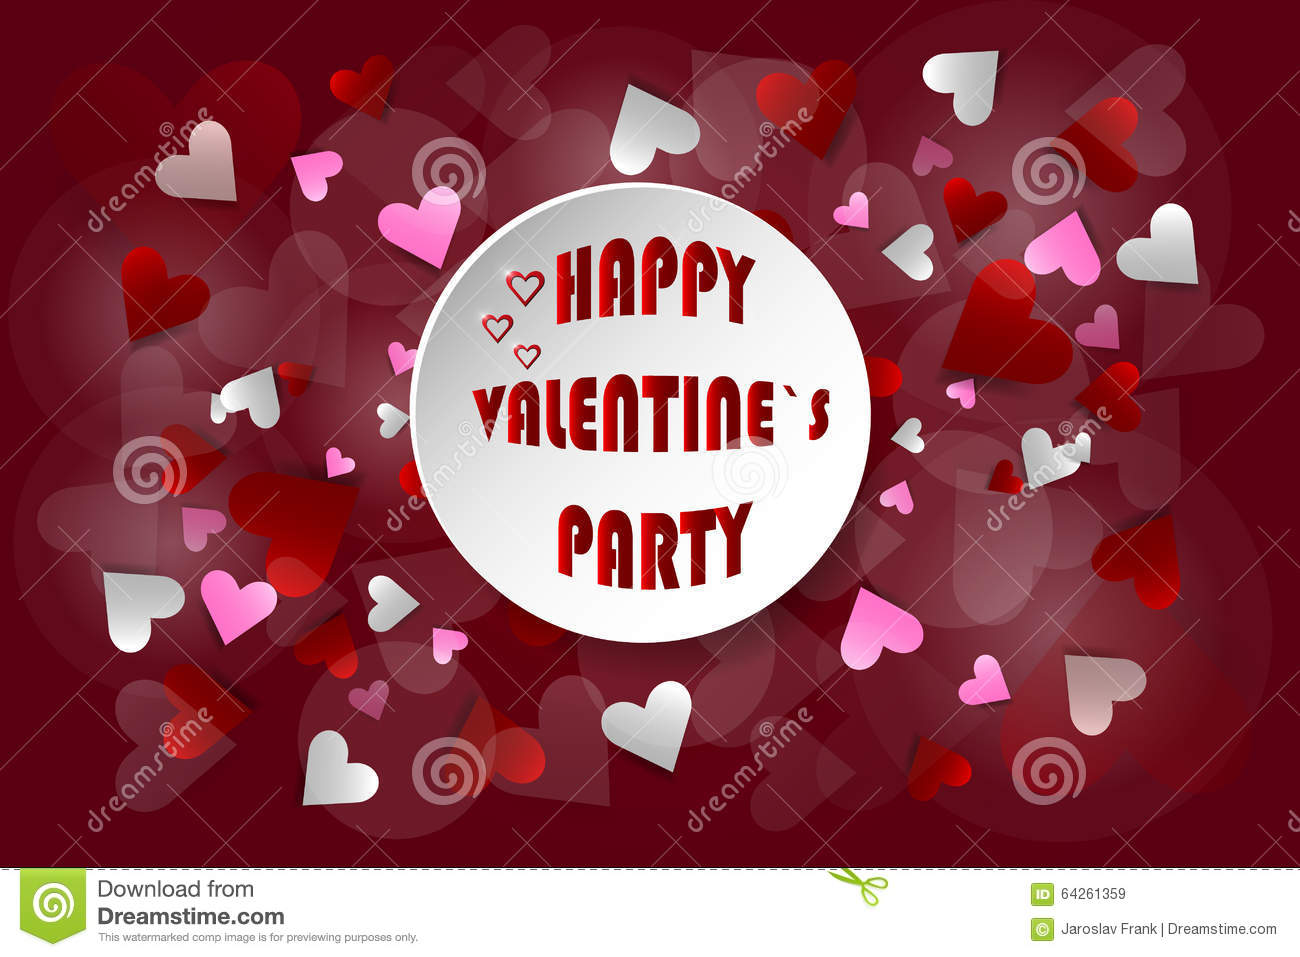 Schön Valentines Party Invitation Card